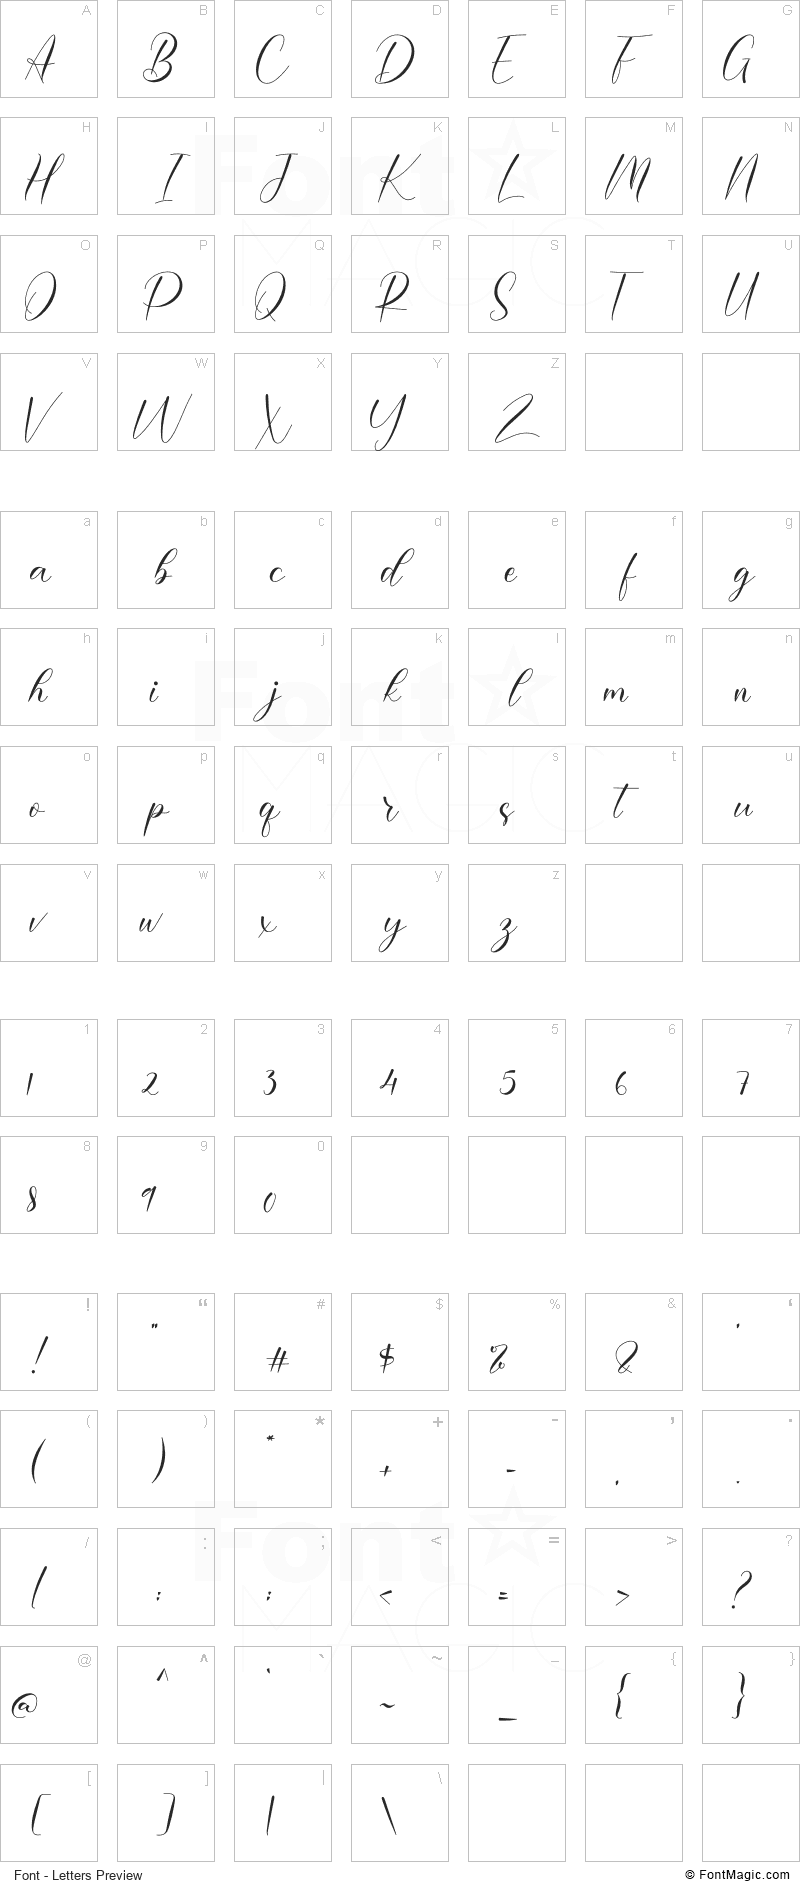 Morelove Font - All Latters Preview Chart